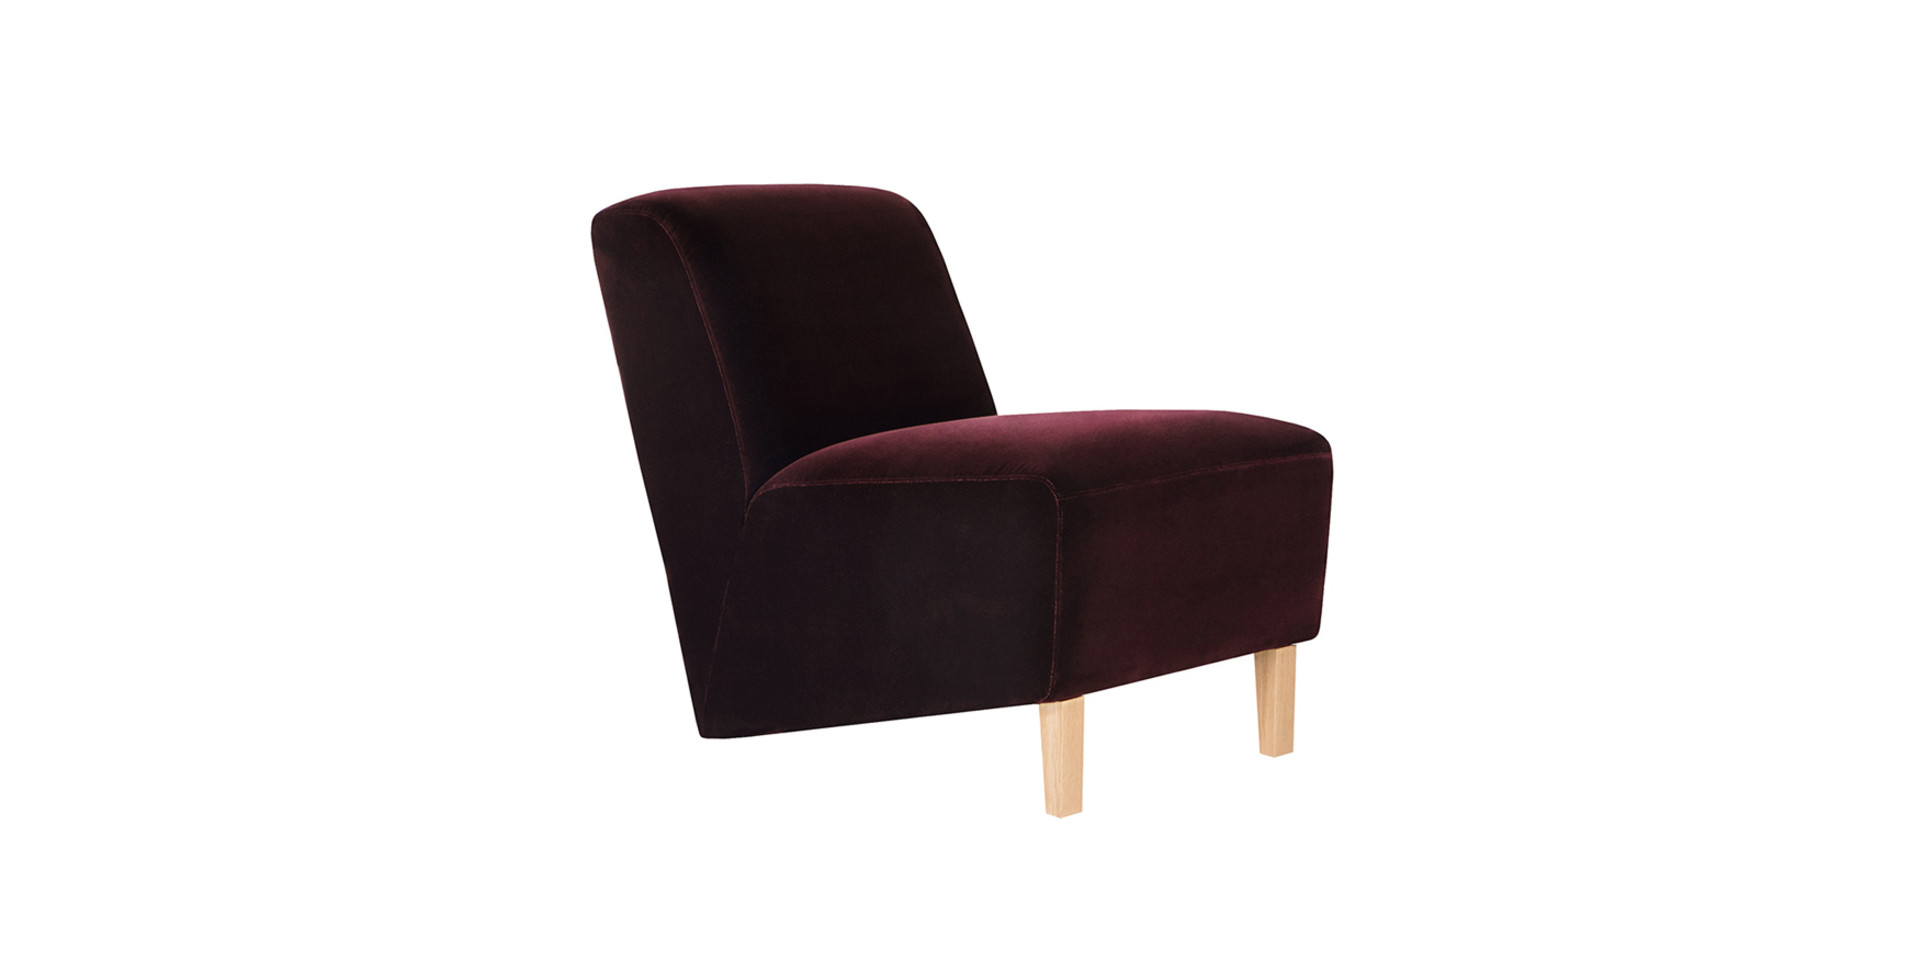 sits-allan-fauteuil-armchair_lario2007_wine_red_2